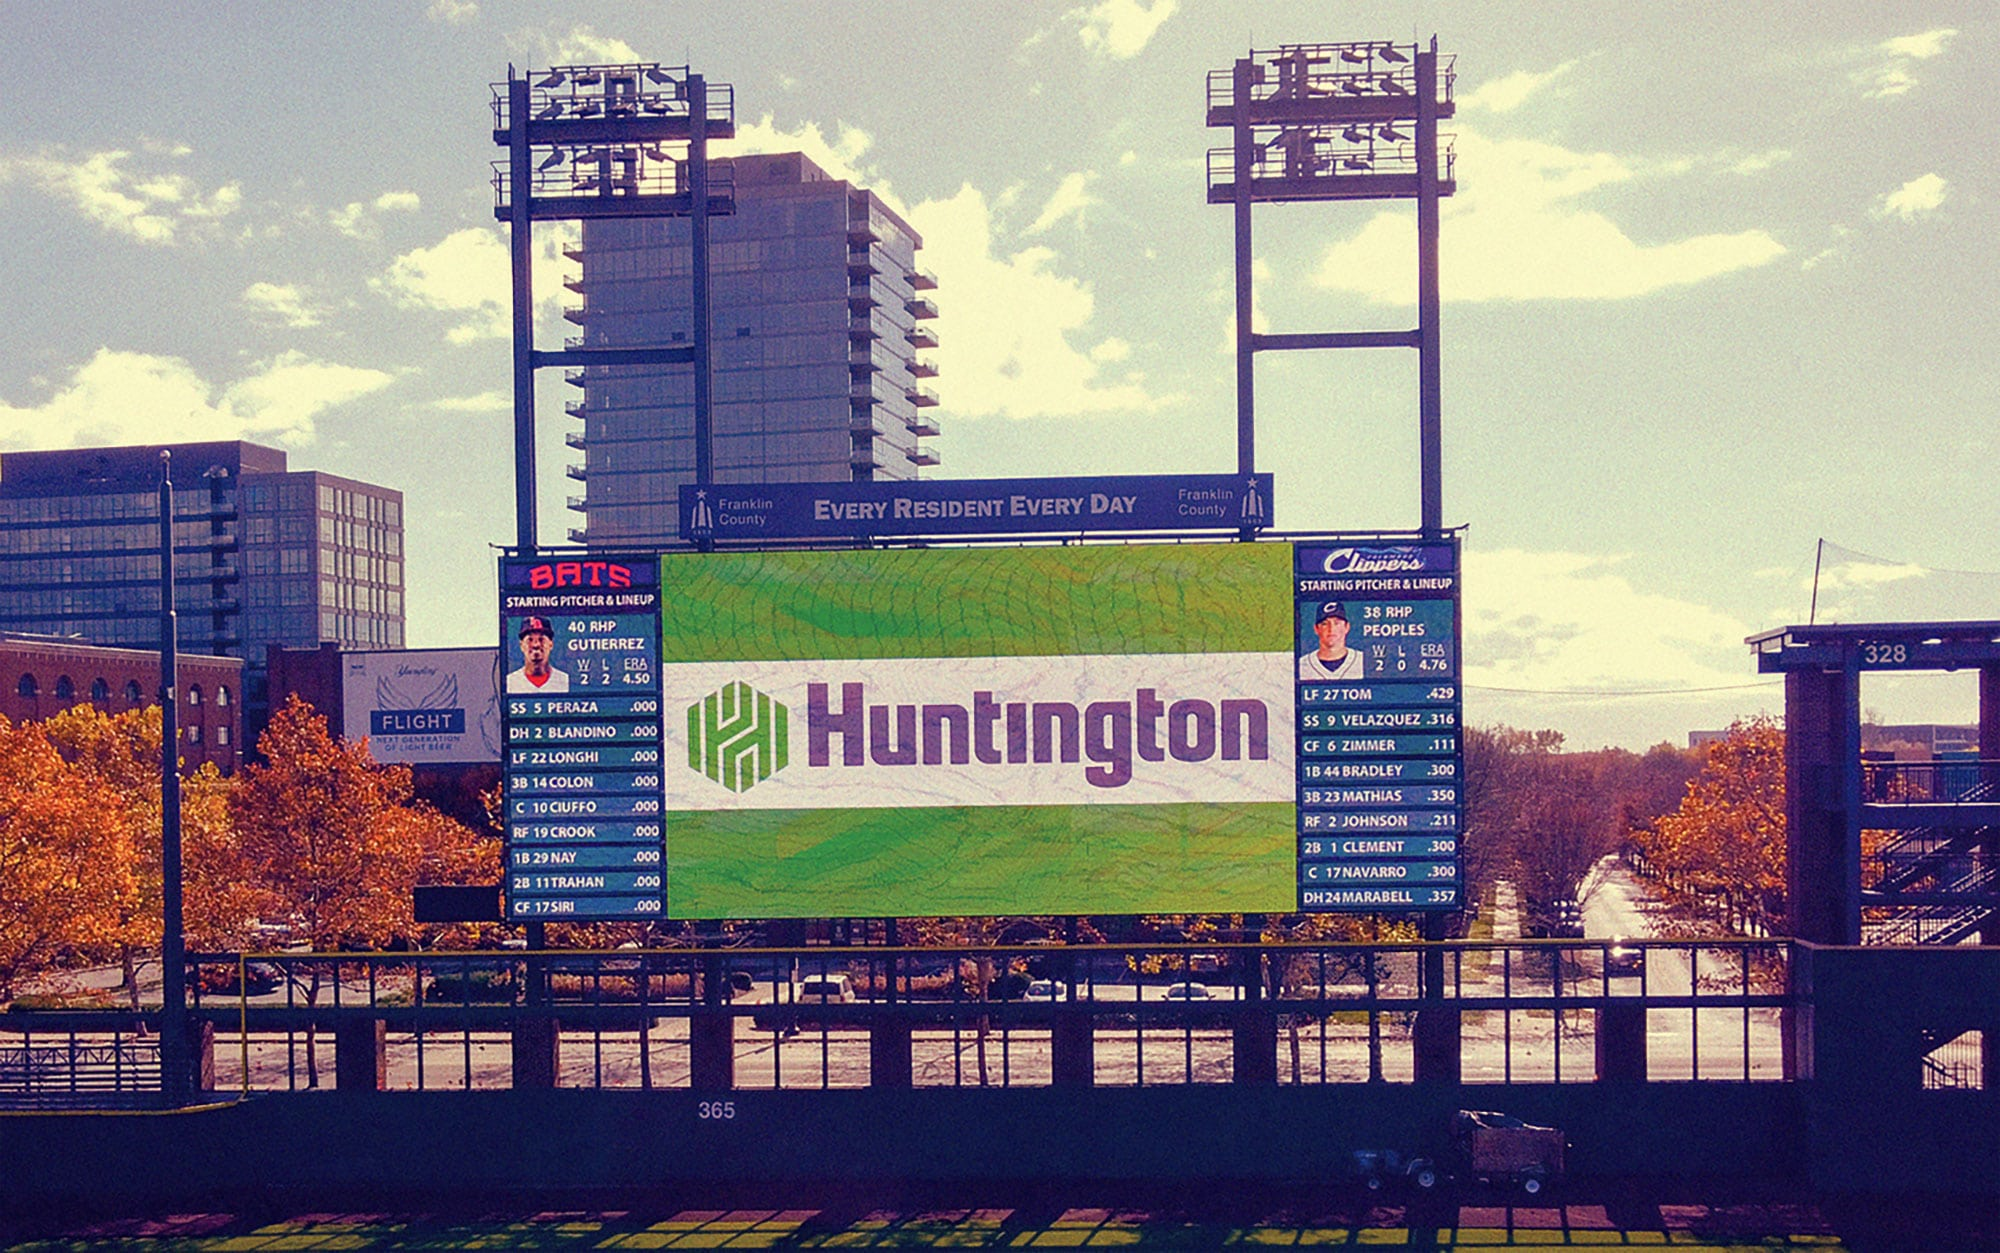 The Columbus Clippers minor league baseball team's scoreboard recently got a major upgrade thanks to DNite Sign Co.'s (Columbus, OH) install of a high-resolution Daktronics EMC.